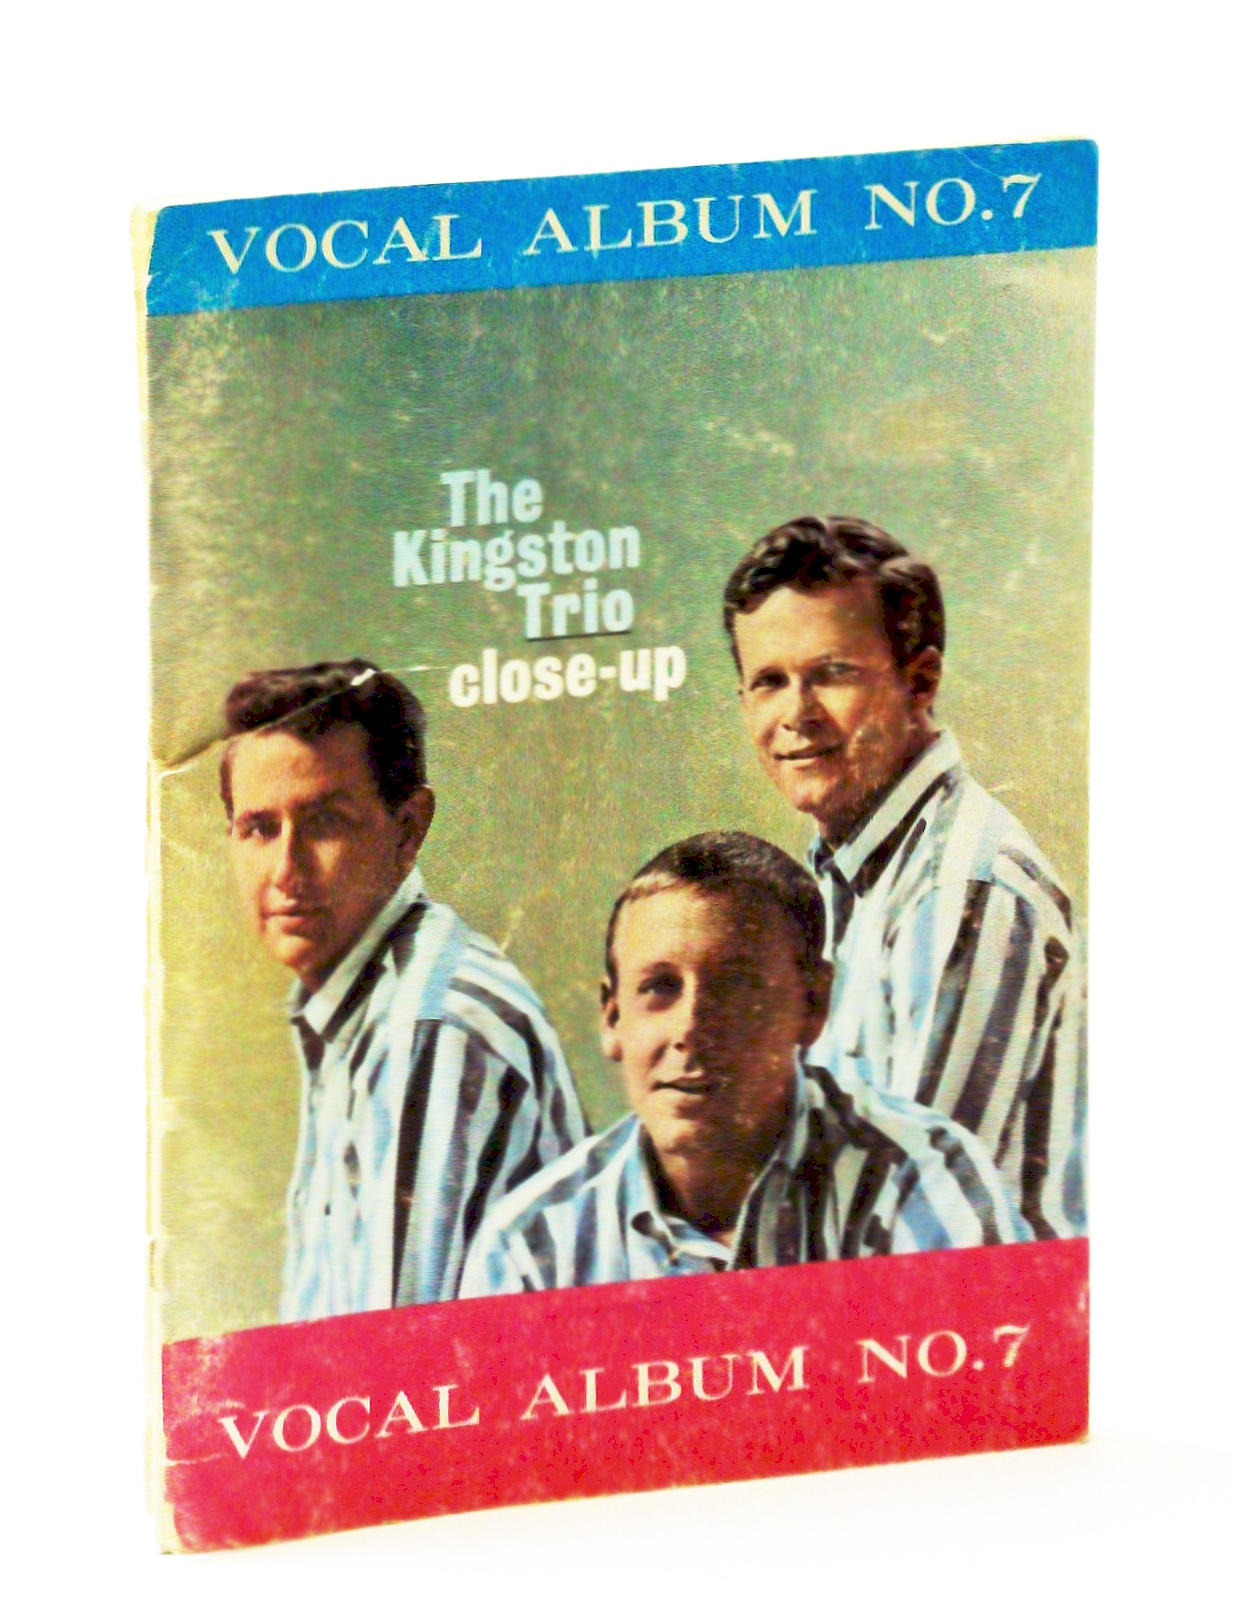 Image for The Kingston Trio - Close-Up: Vocal Album No. 7 [Songbook]